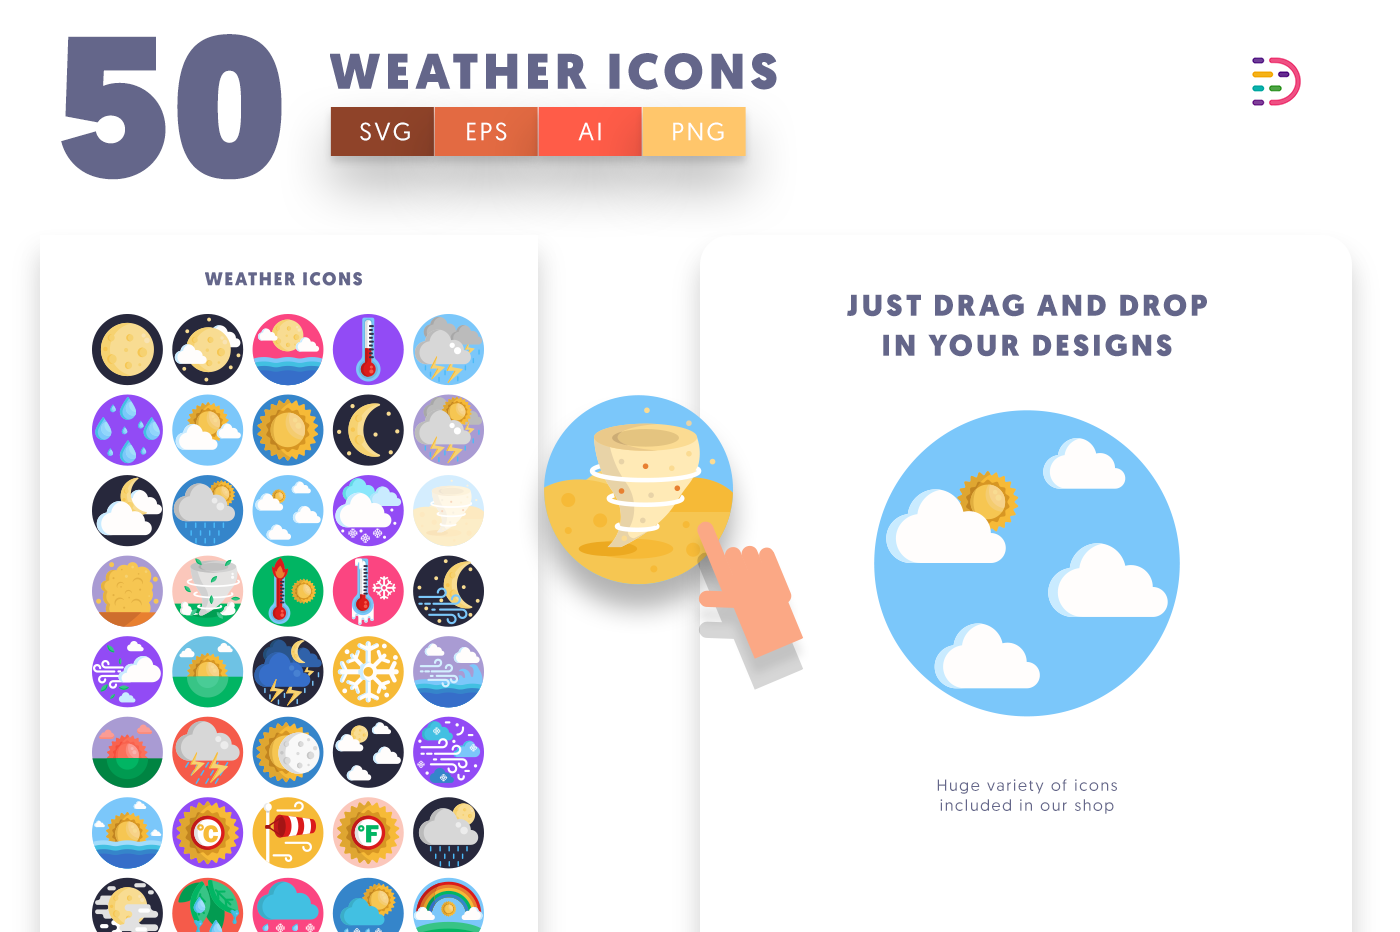 Drag and drop vector 50 Weather Icons